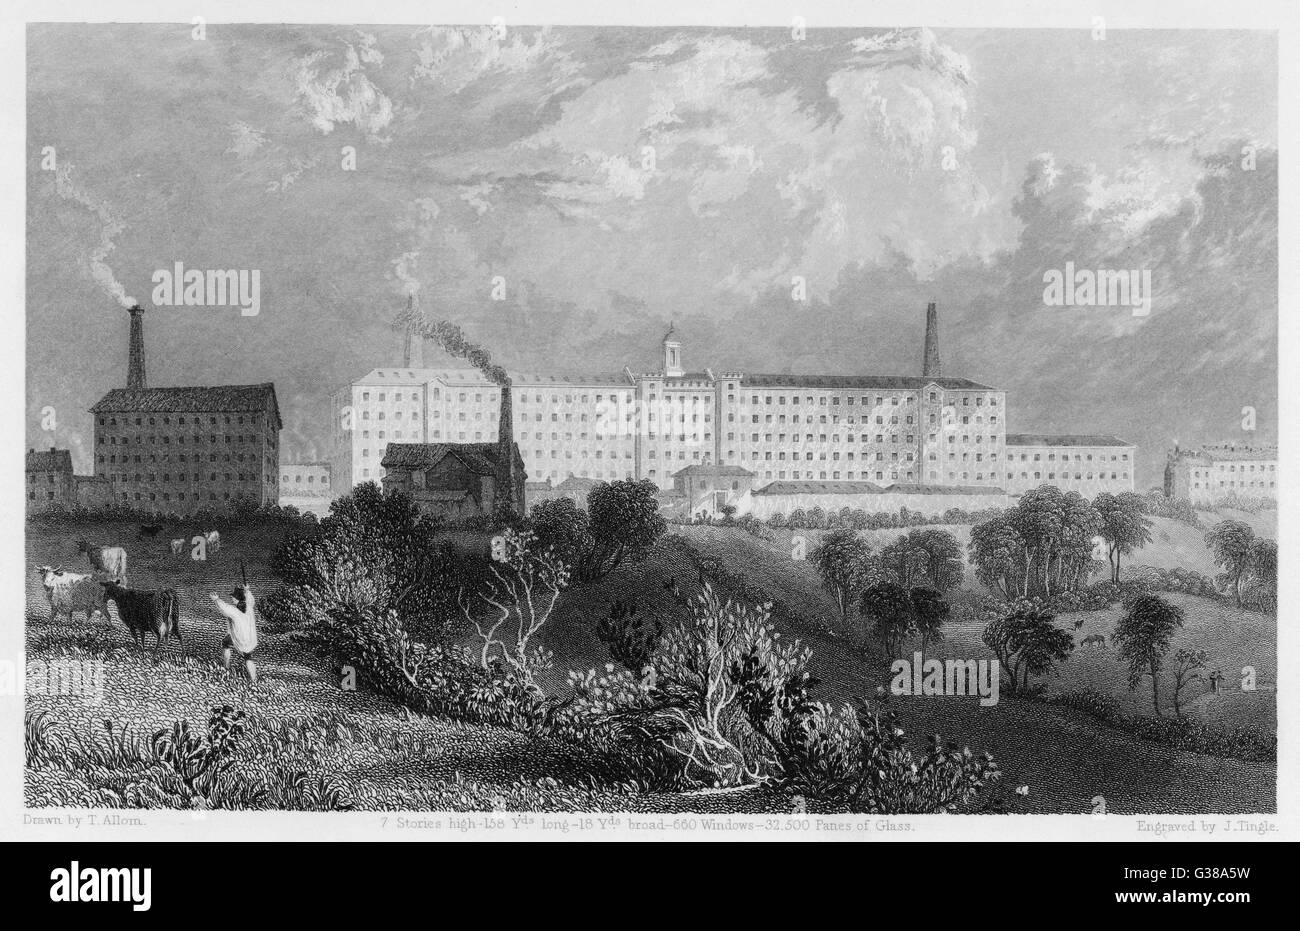 The cotton mills of Swainson,  Birley and Co. Preston,  Lancashire.       Date: 1835 - Stock Image